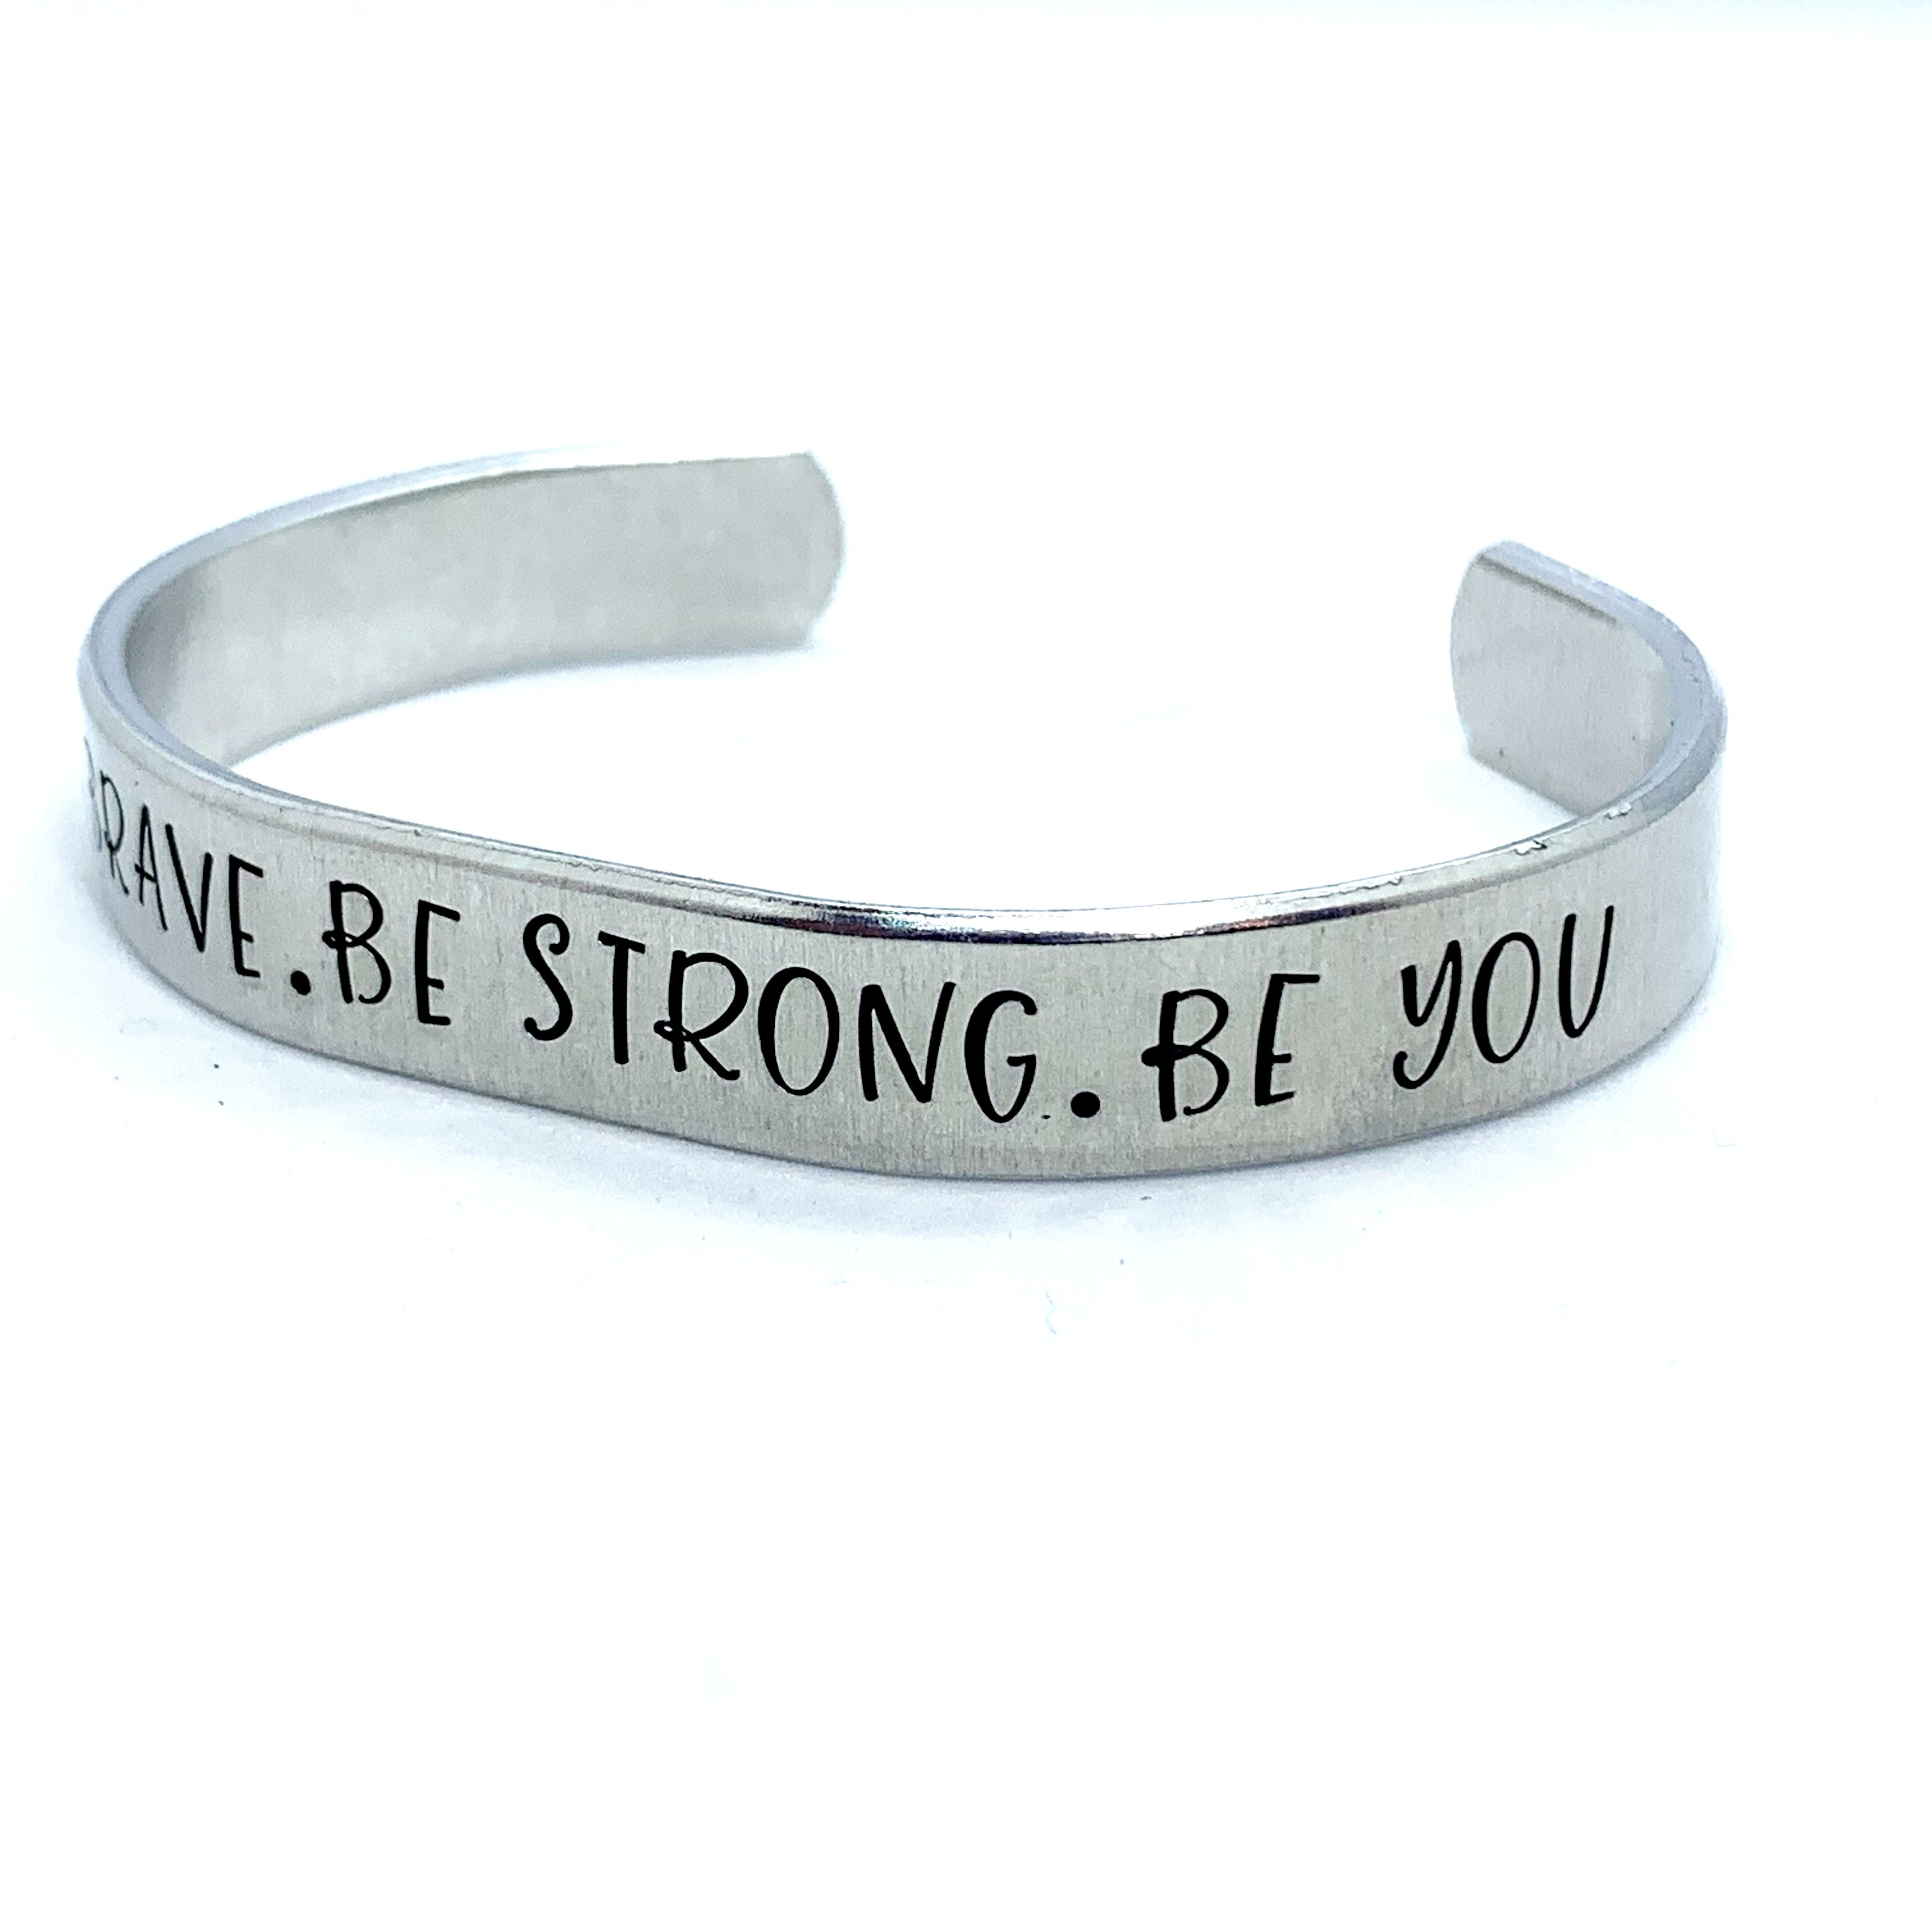 ⅜ inch Aluminum Cuff - Be Brave. Be Strong. Be You